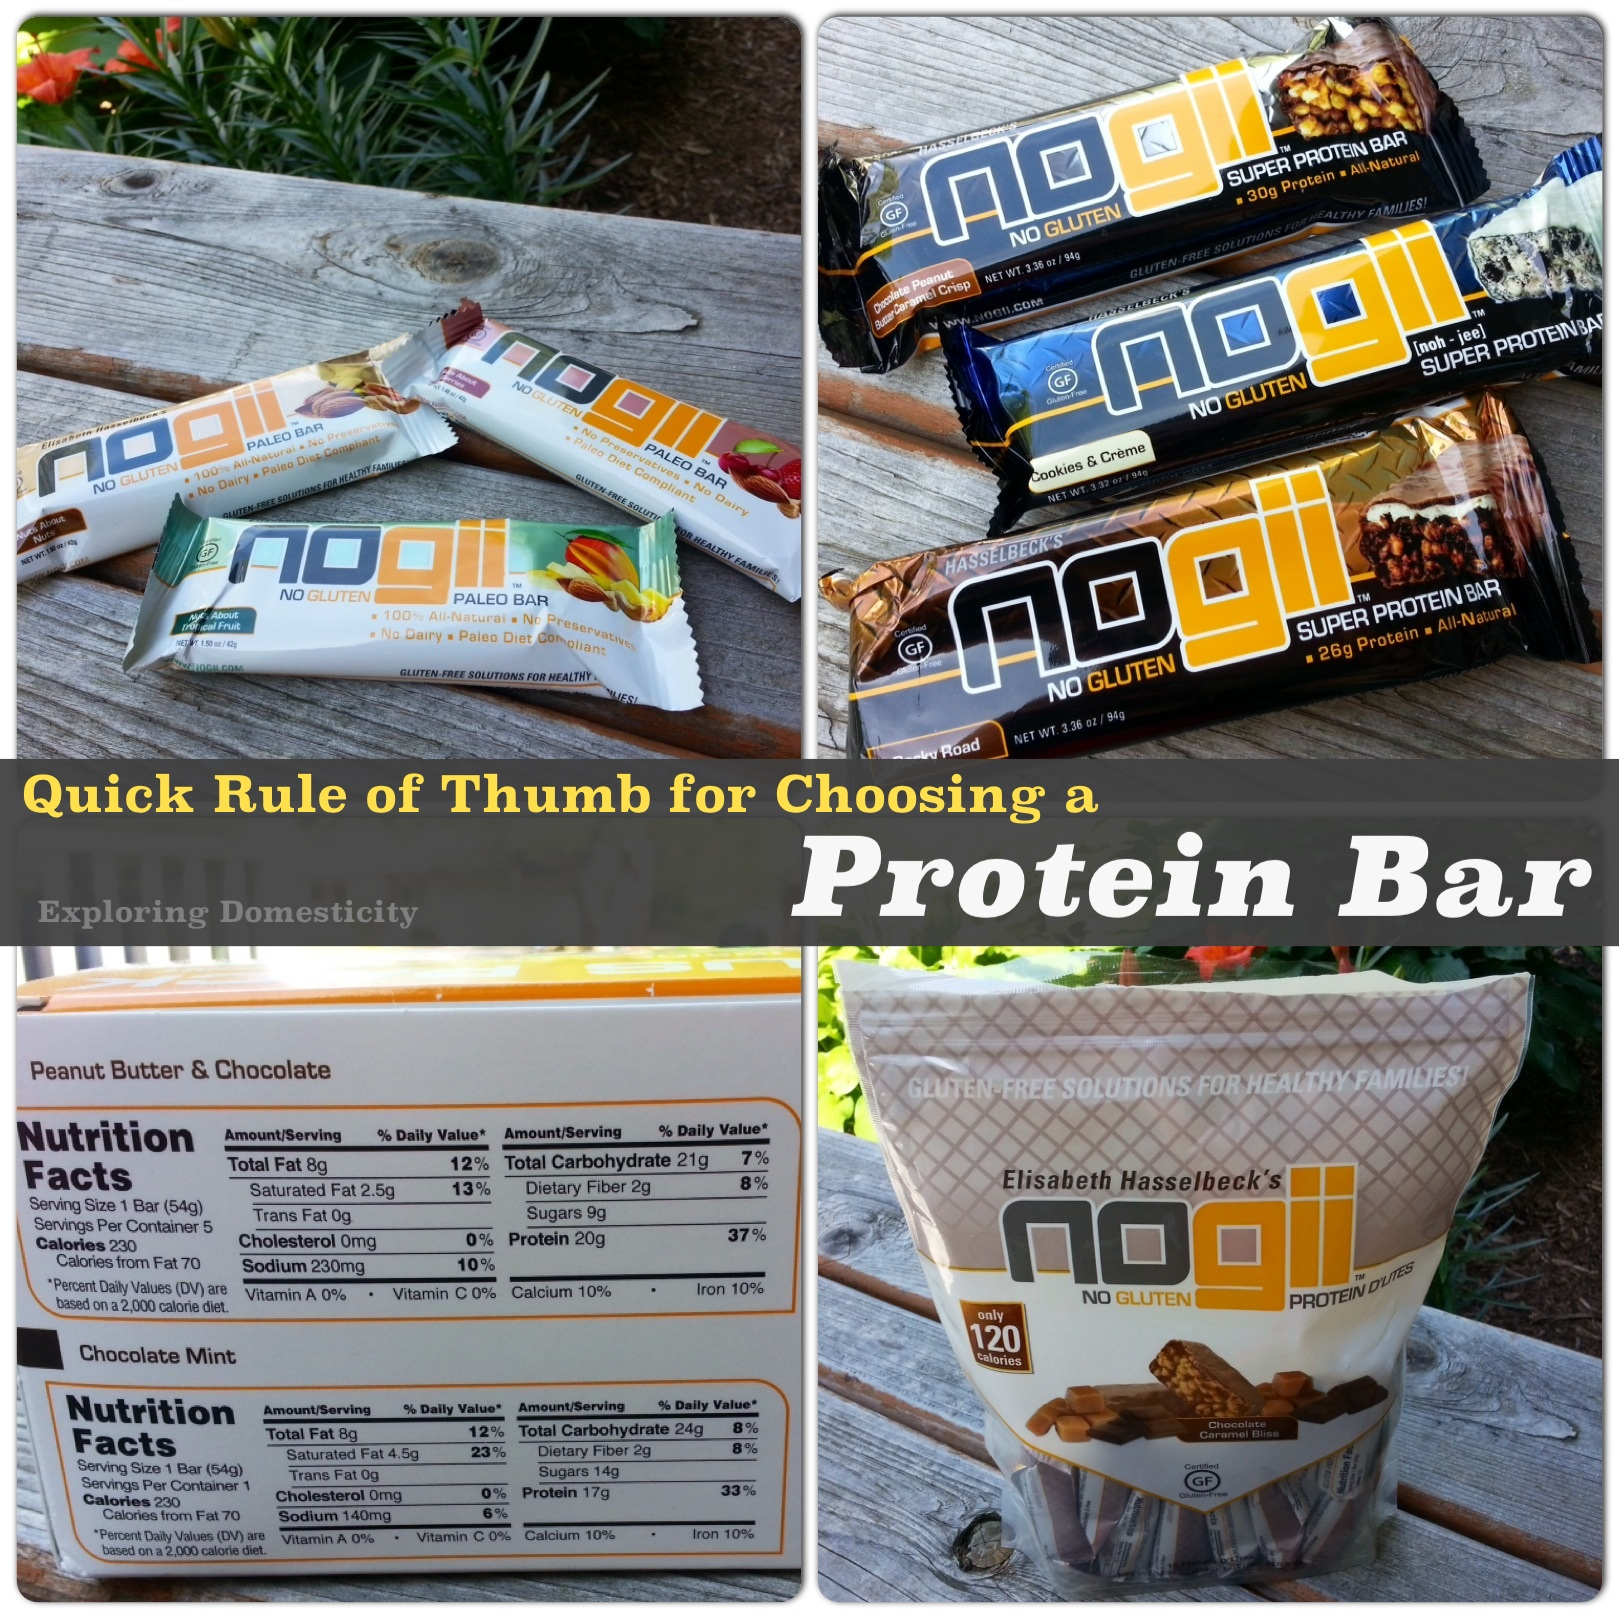 Quick rule of thumb for choosing a protein bar